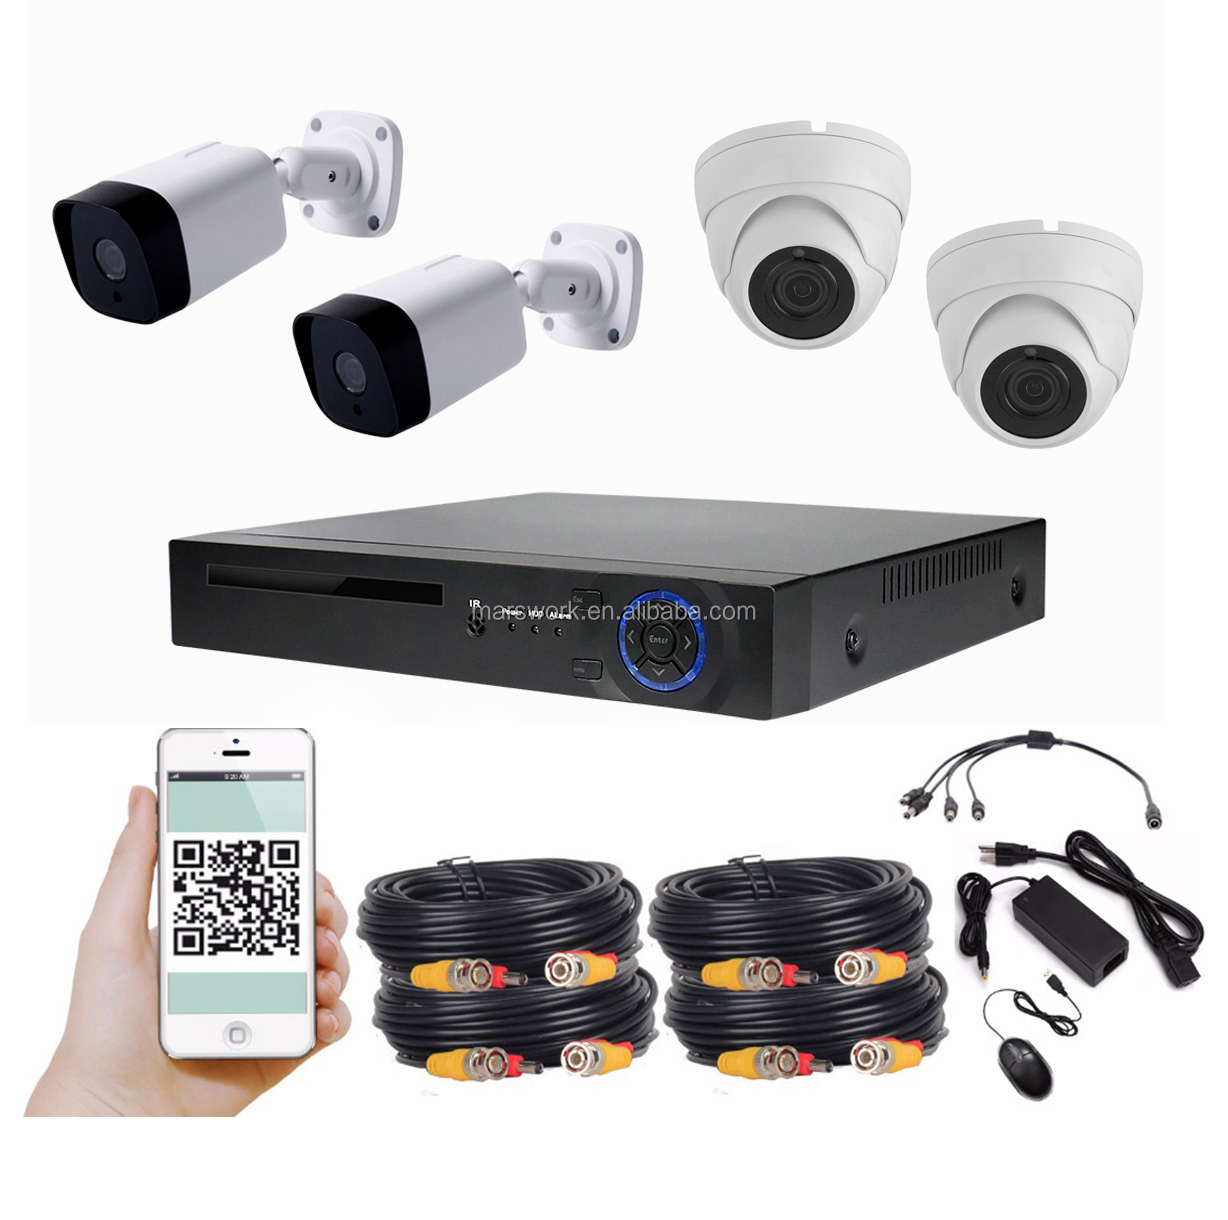 IP67 waterdichte bullet en dome 30m nachtzicht 4pcs 4mp ahd camera 5mp DVR 4CH AHD DVR kit p2p